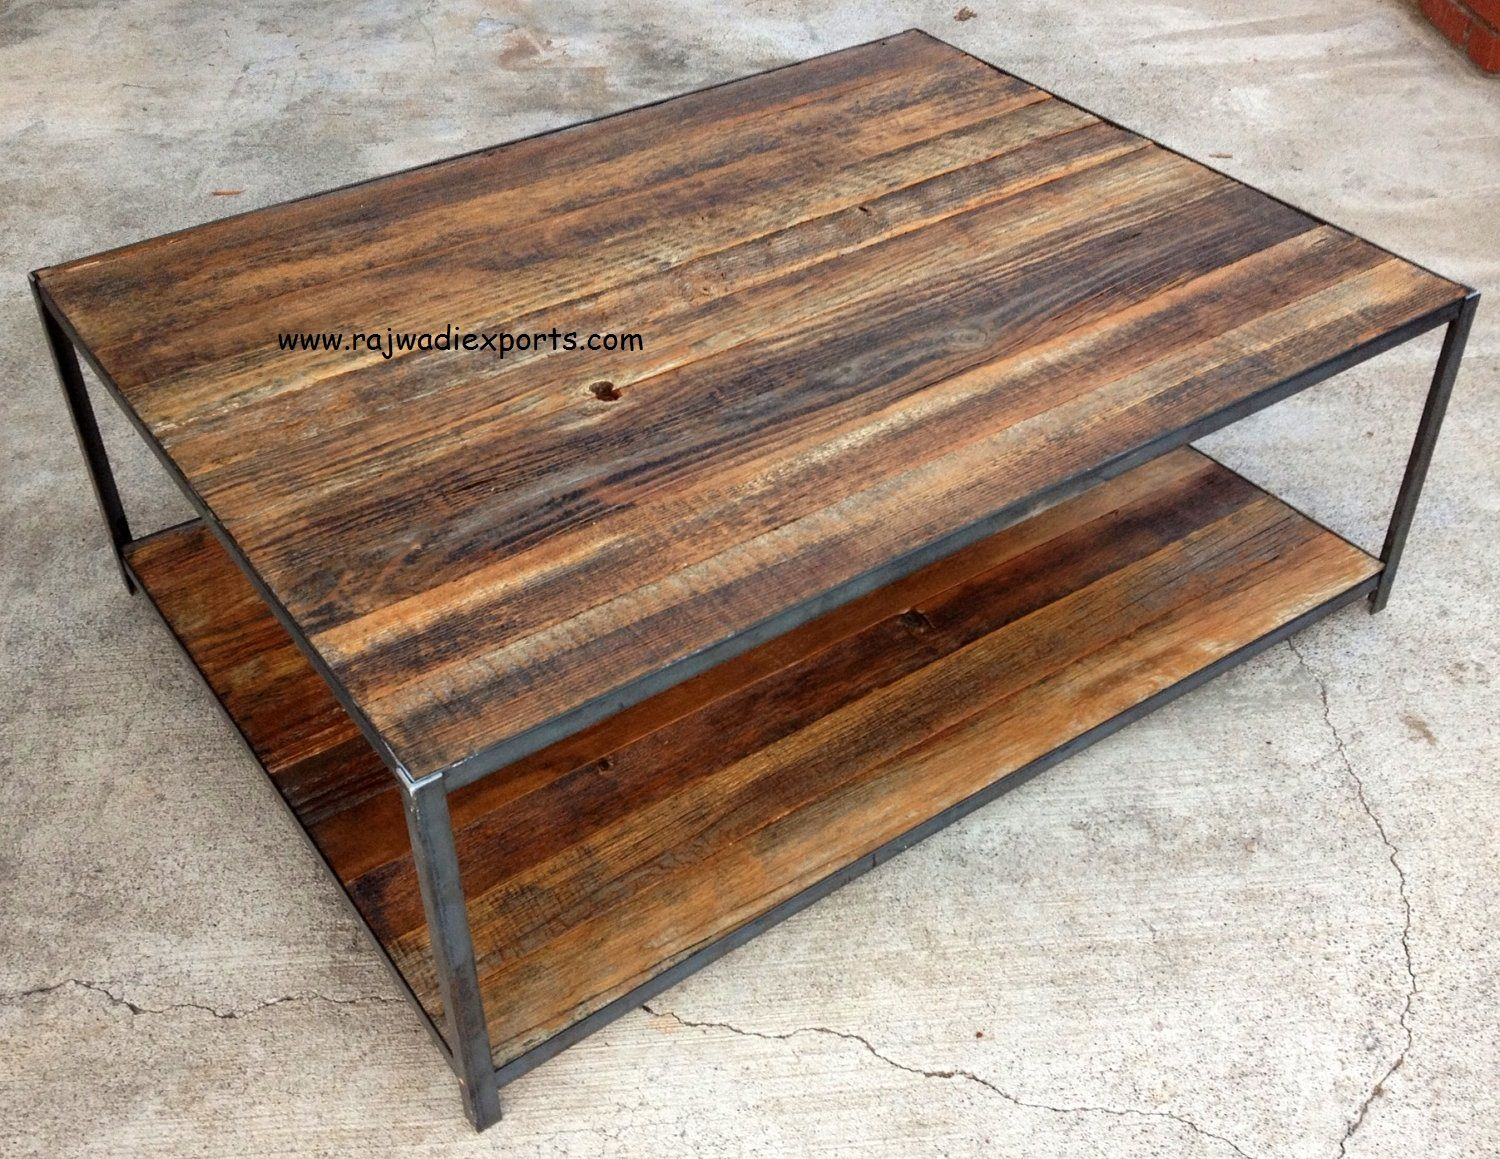 Rustic Art Designs Reclaimed Wood Coffee Table and Side board ...